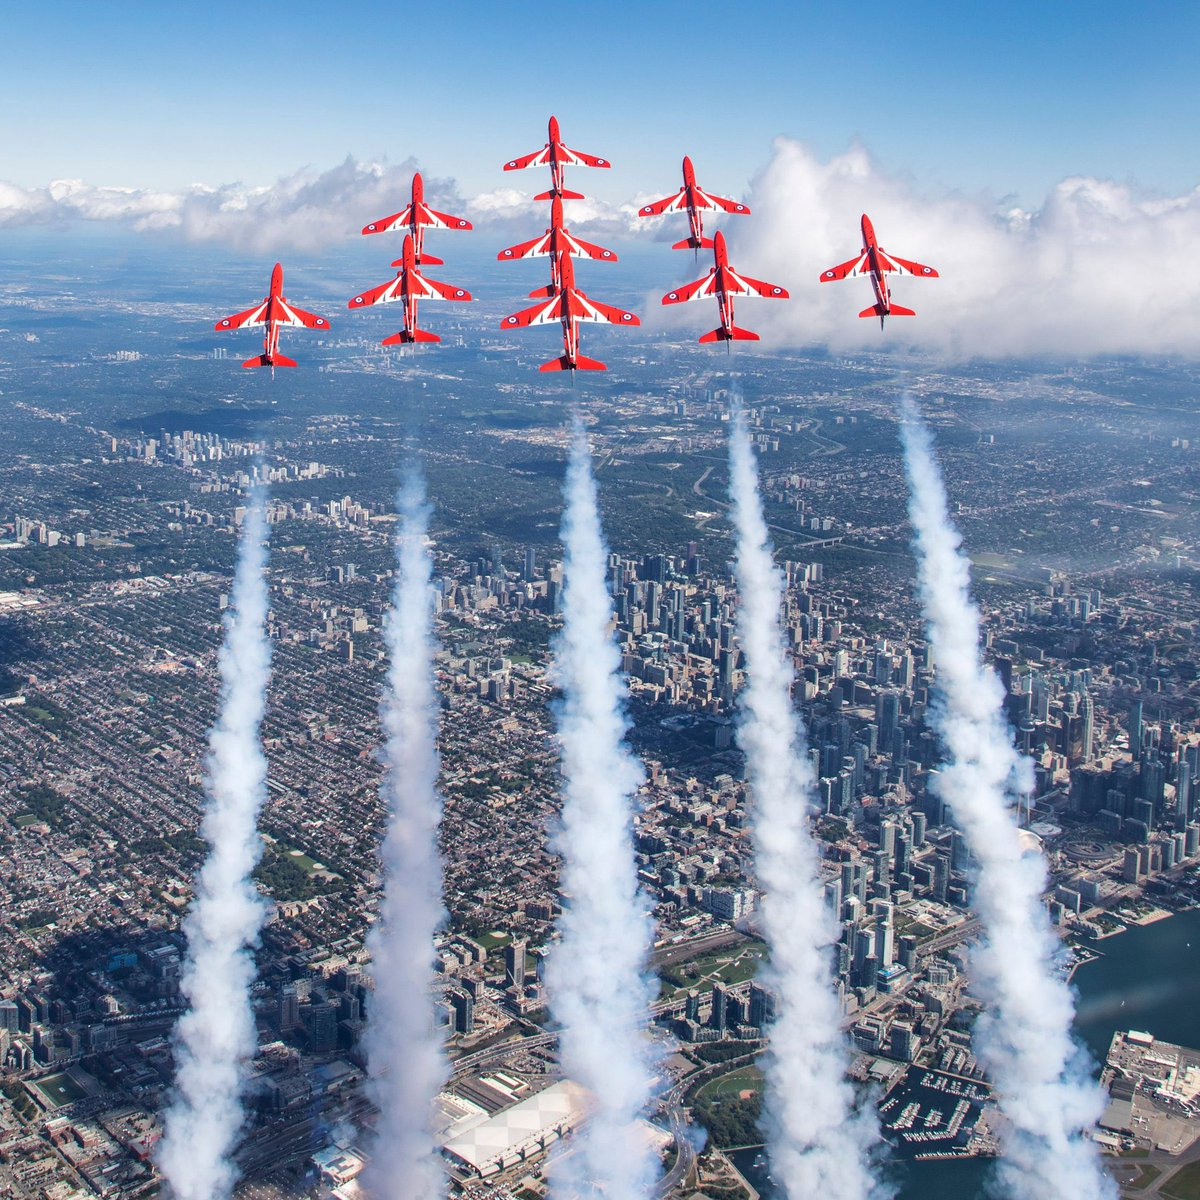 Less than an hour to go until Reds 1 and 10 share their experiences of these amazing moments in #Canada last year and many more #RedArrowsTour highlights. The special #55Parallels Event is at 1200 EST / 1700 BST (UK time) and is a live stream on https://t.co/CWfr053AjP 🇬🇧🇨🇦 https://t.co/dypjWbXwU3